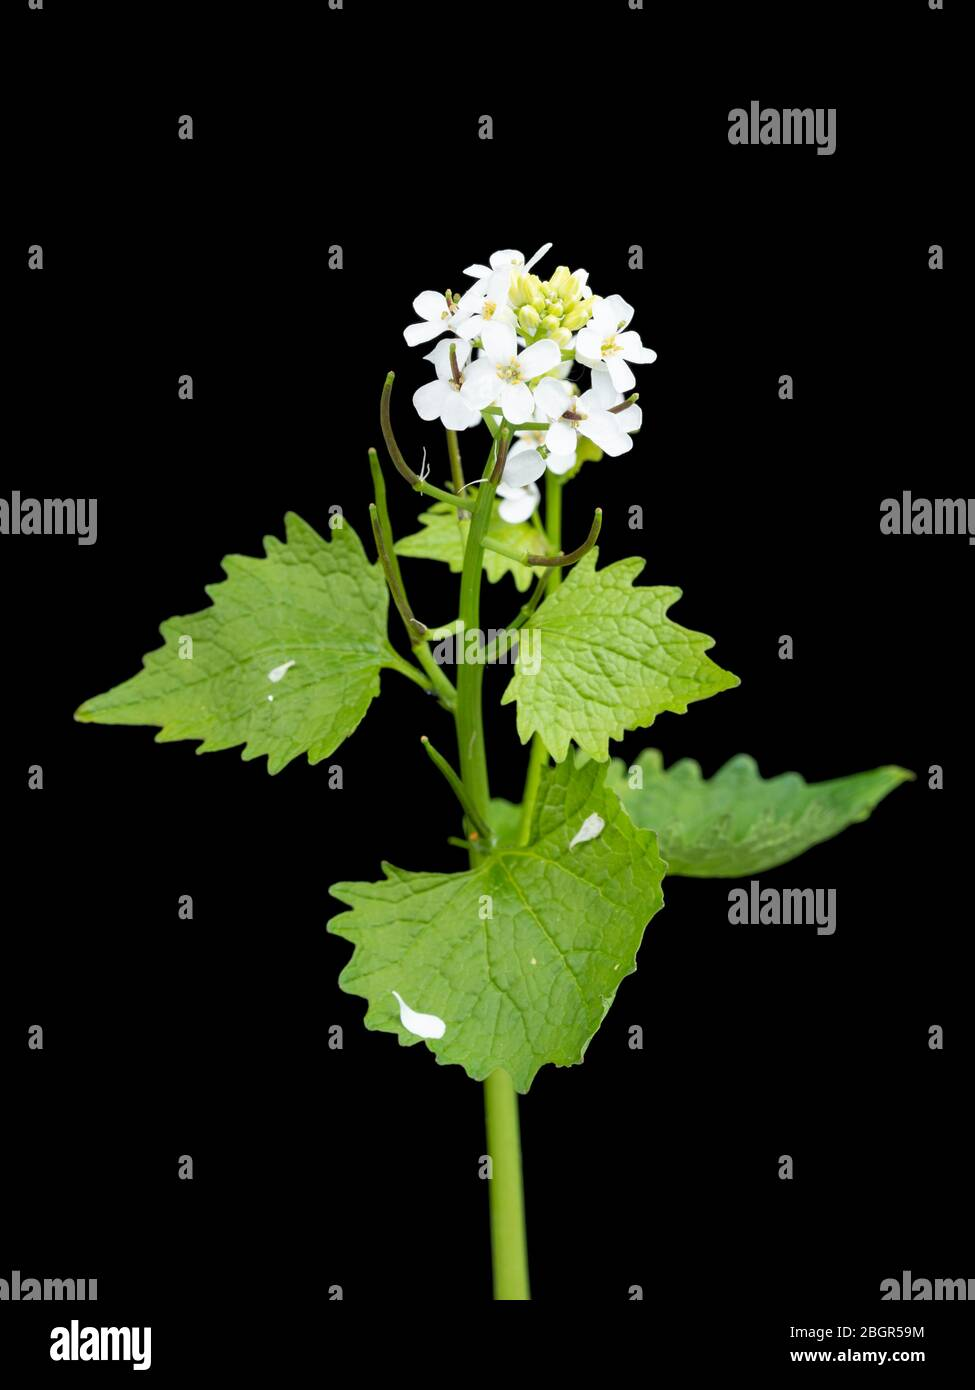 UK wildflower, Jack by the hedge or garlic mustard, Alliaria petiolata, flowering against a black background Stock Photo